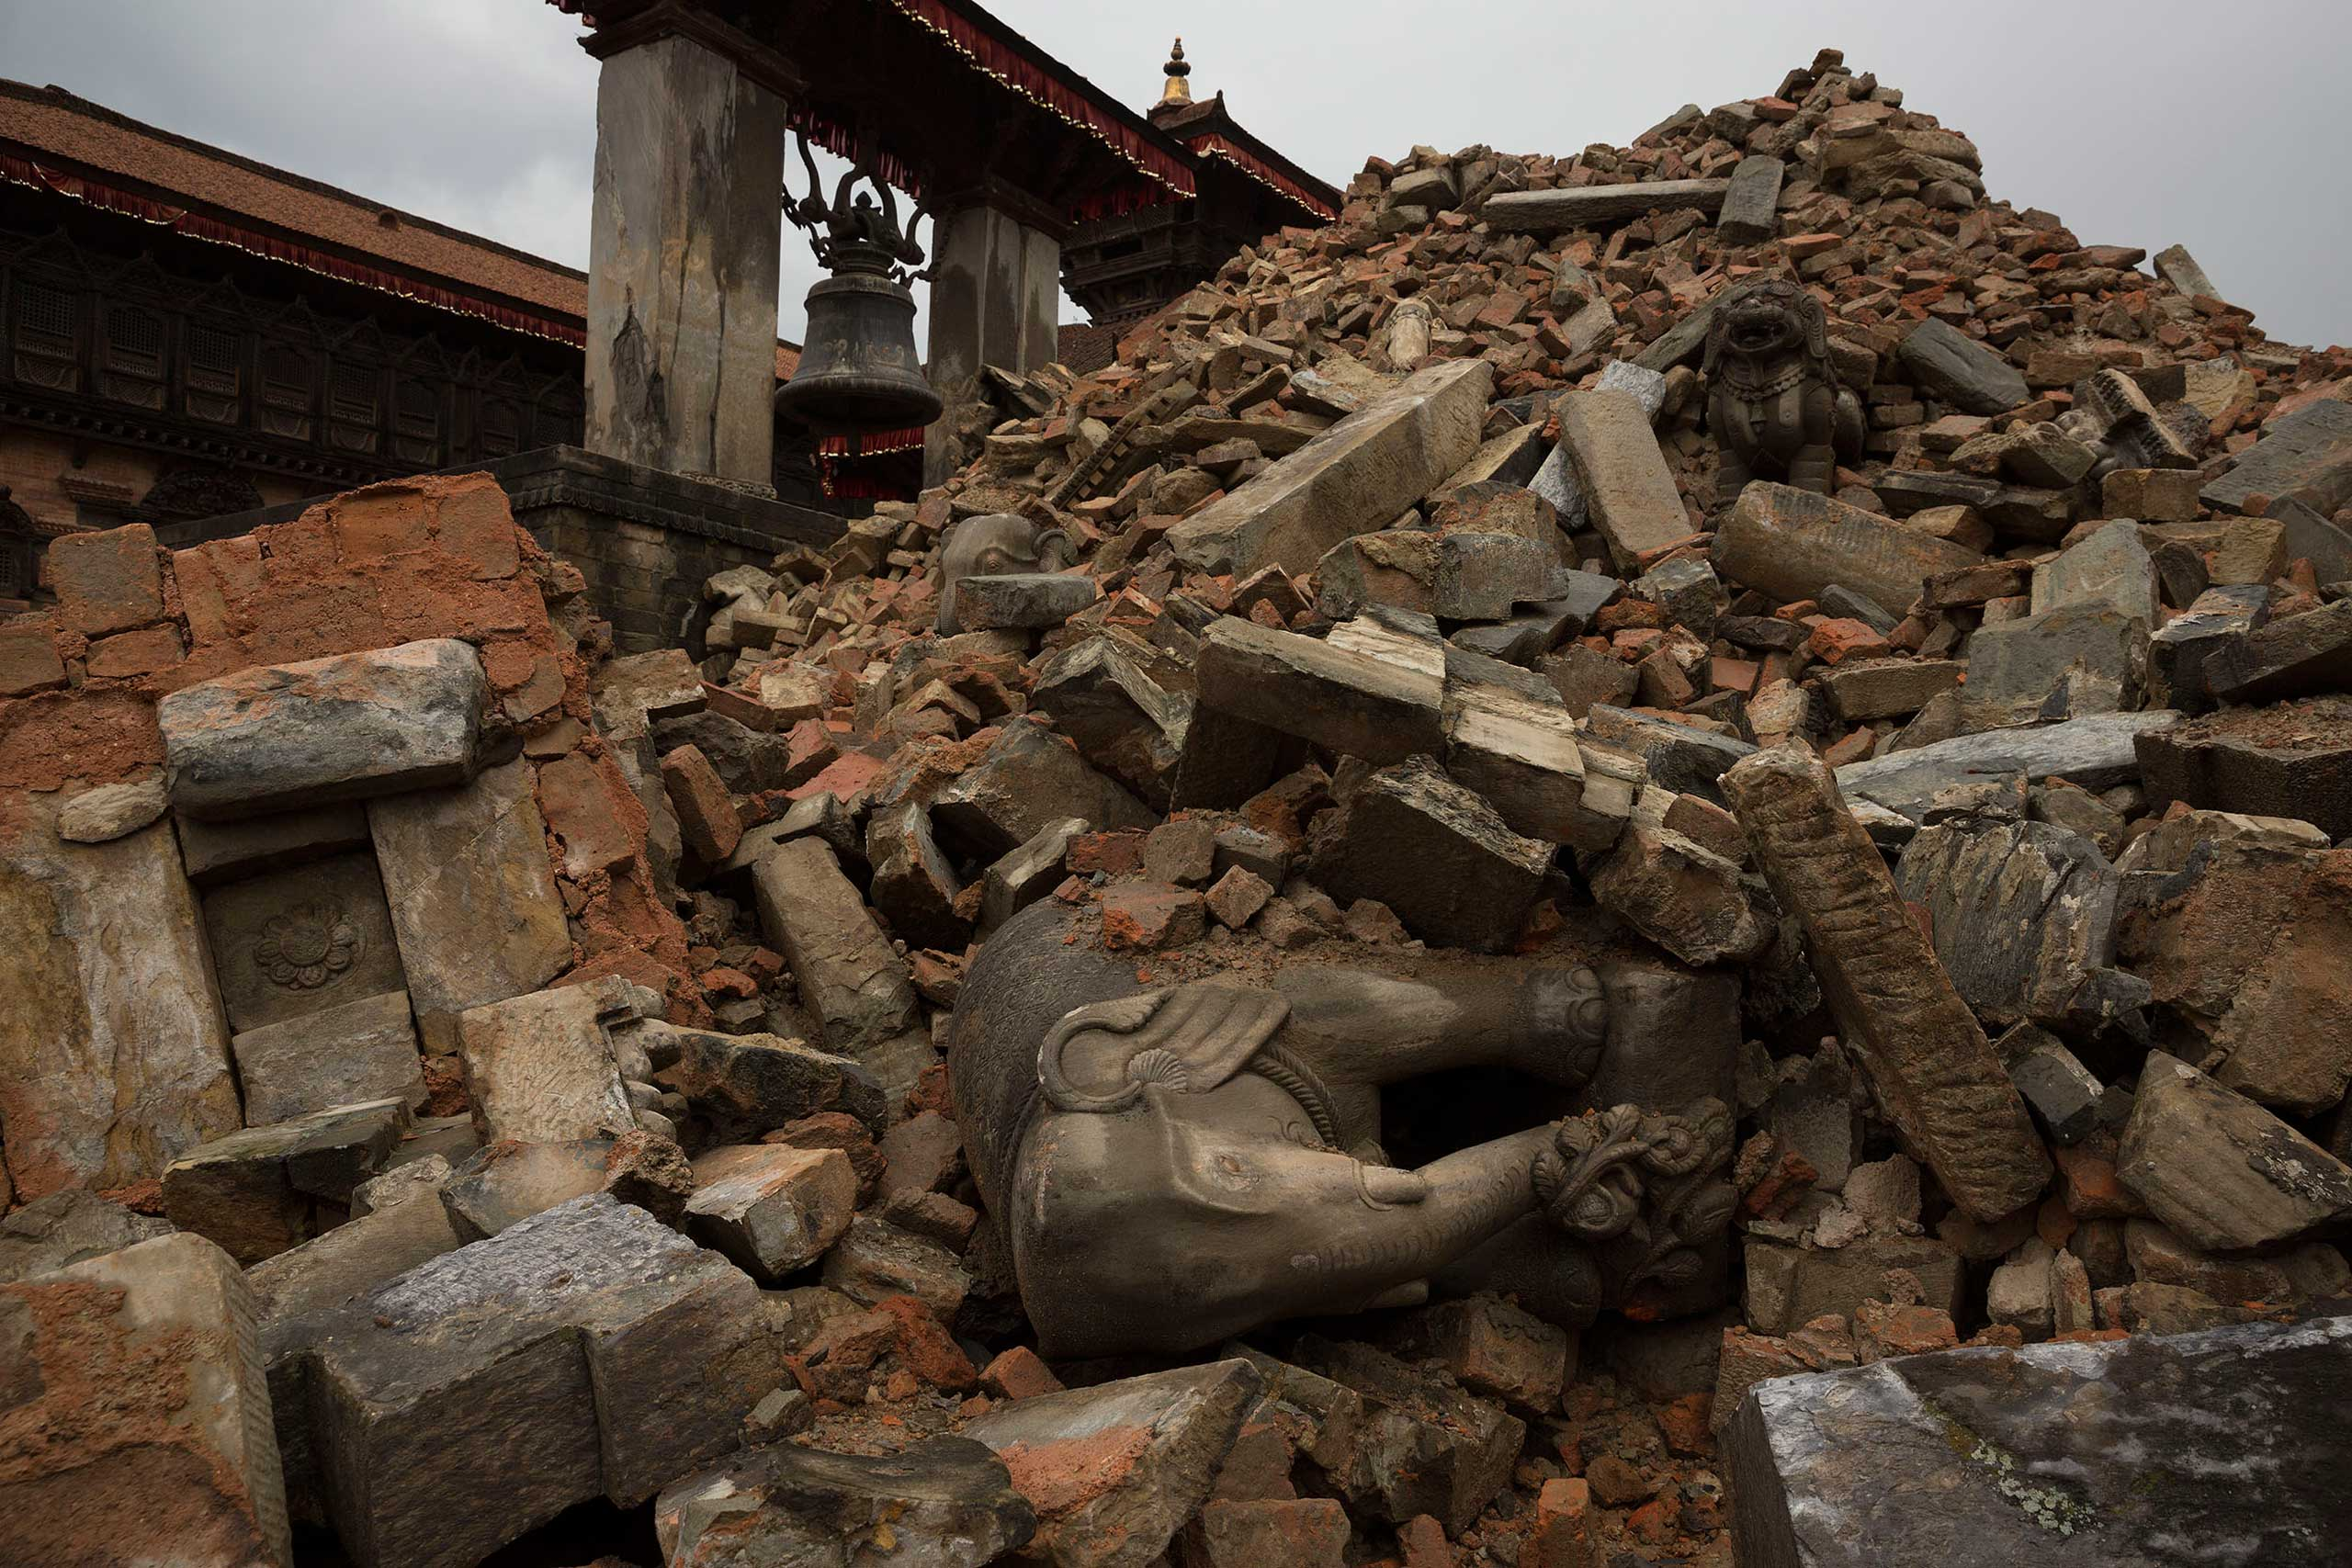 Nepal's 7.8 magnitude earthquake has caused massive destruction of historical temples and palaces like this ancient and sacred site in Bhaktapur, April 29, 2015.